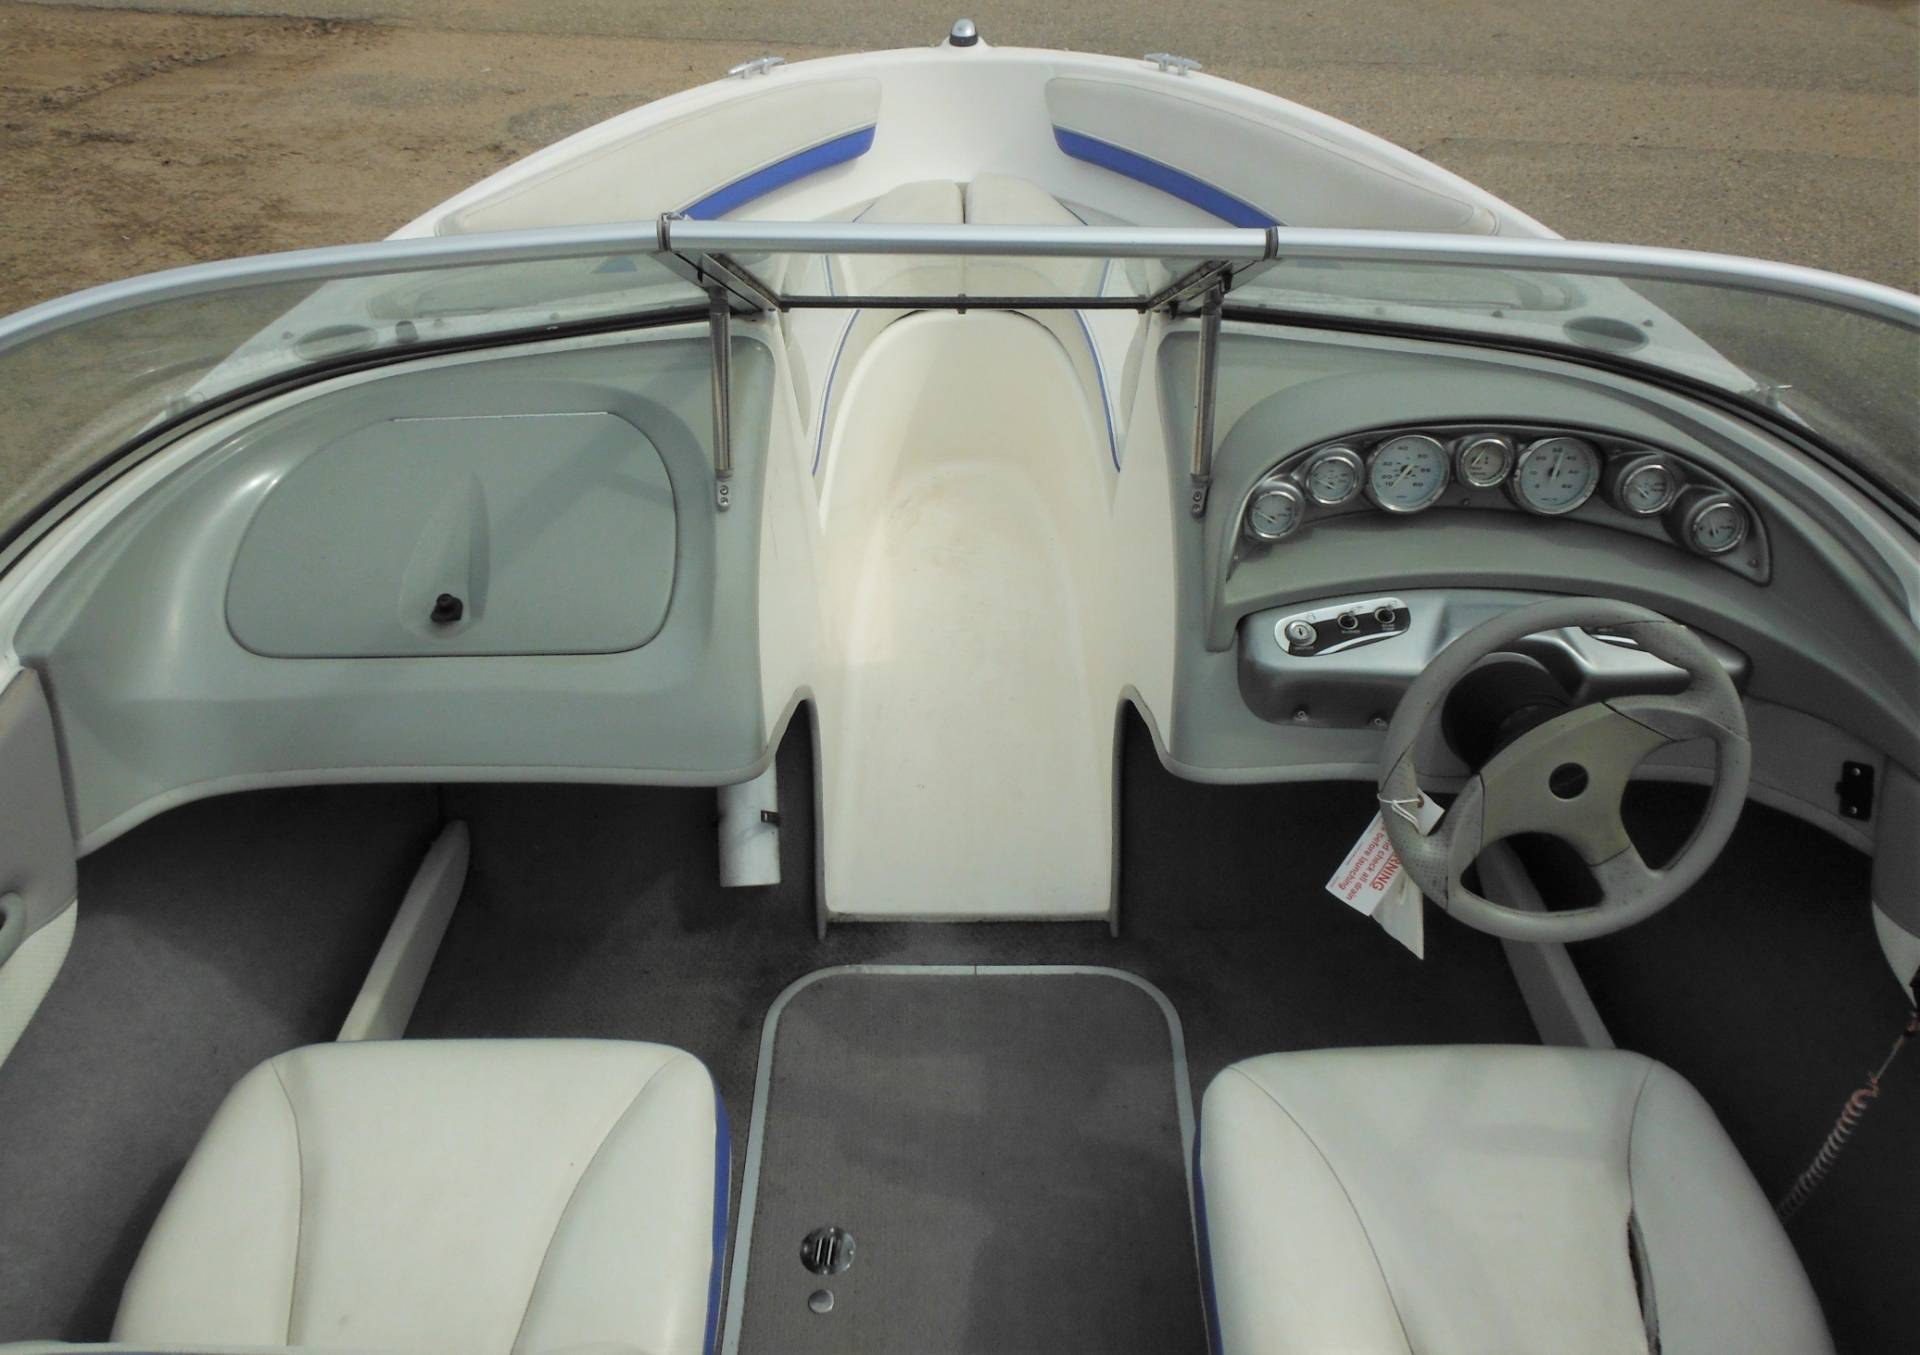 2006 Bayliner 185 Runabout in Saint Helen, Michigan - Photo 24